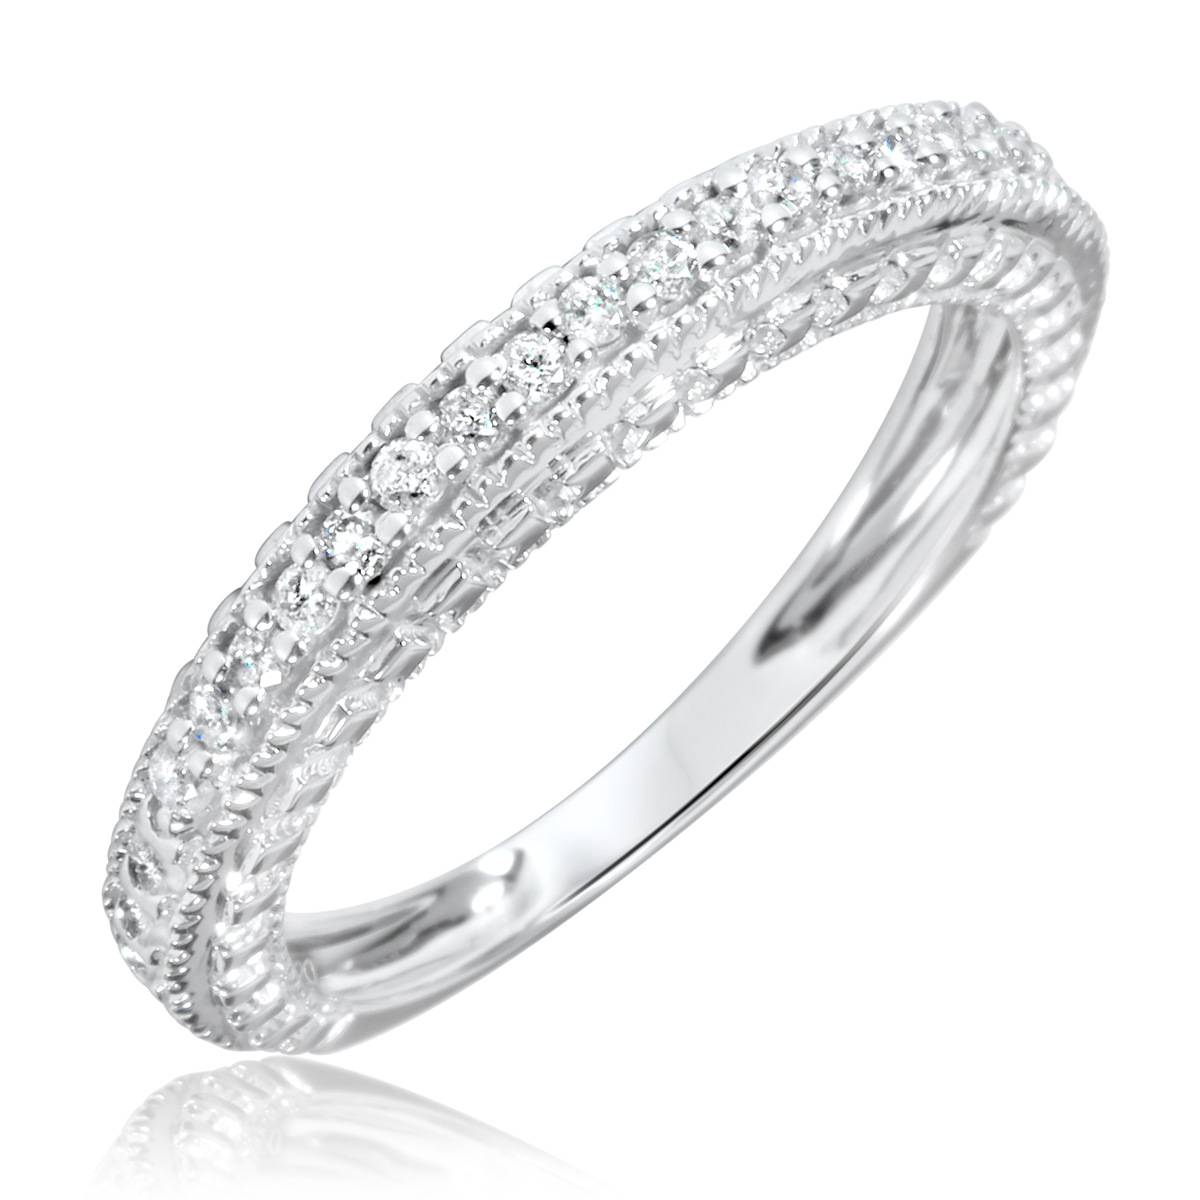 1/5 Carat T.W. Diamond Women's Wedding Ring 10K White Gold ...